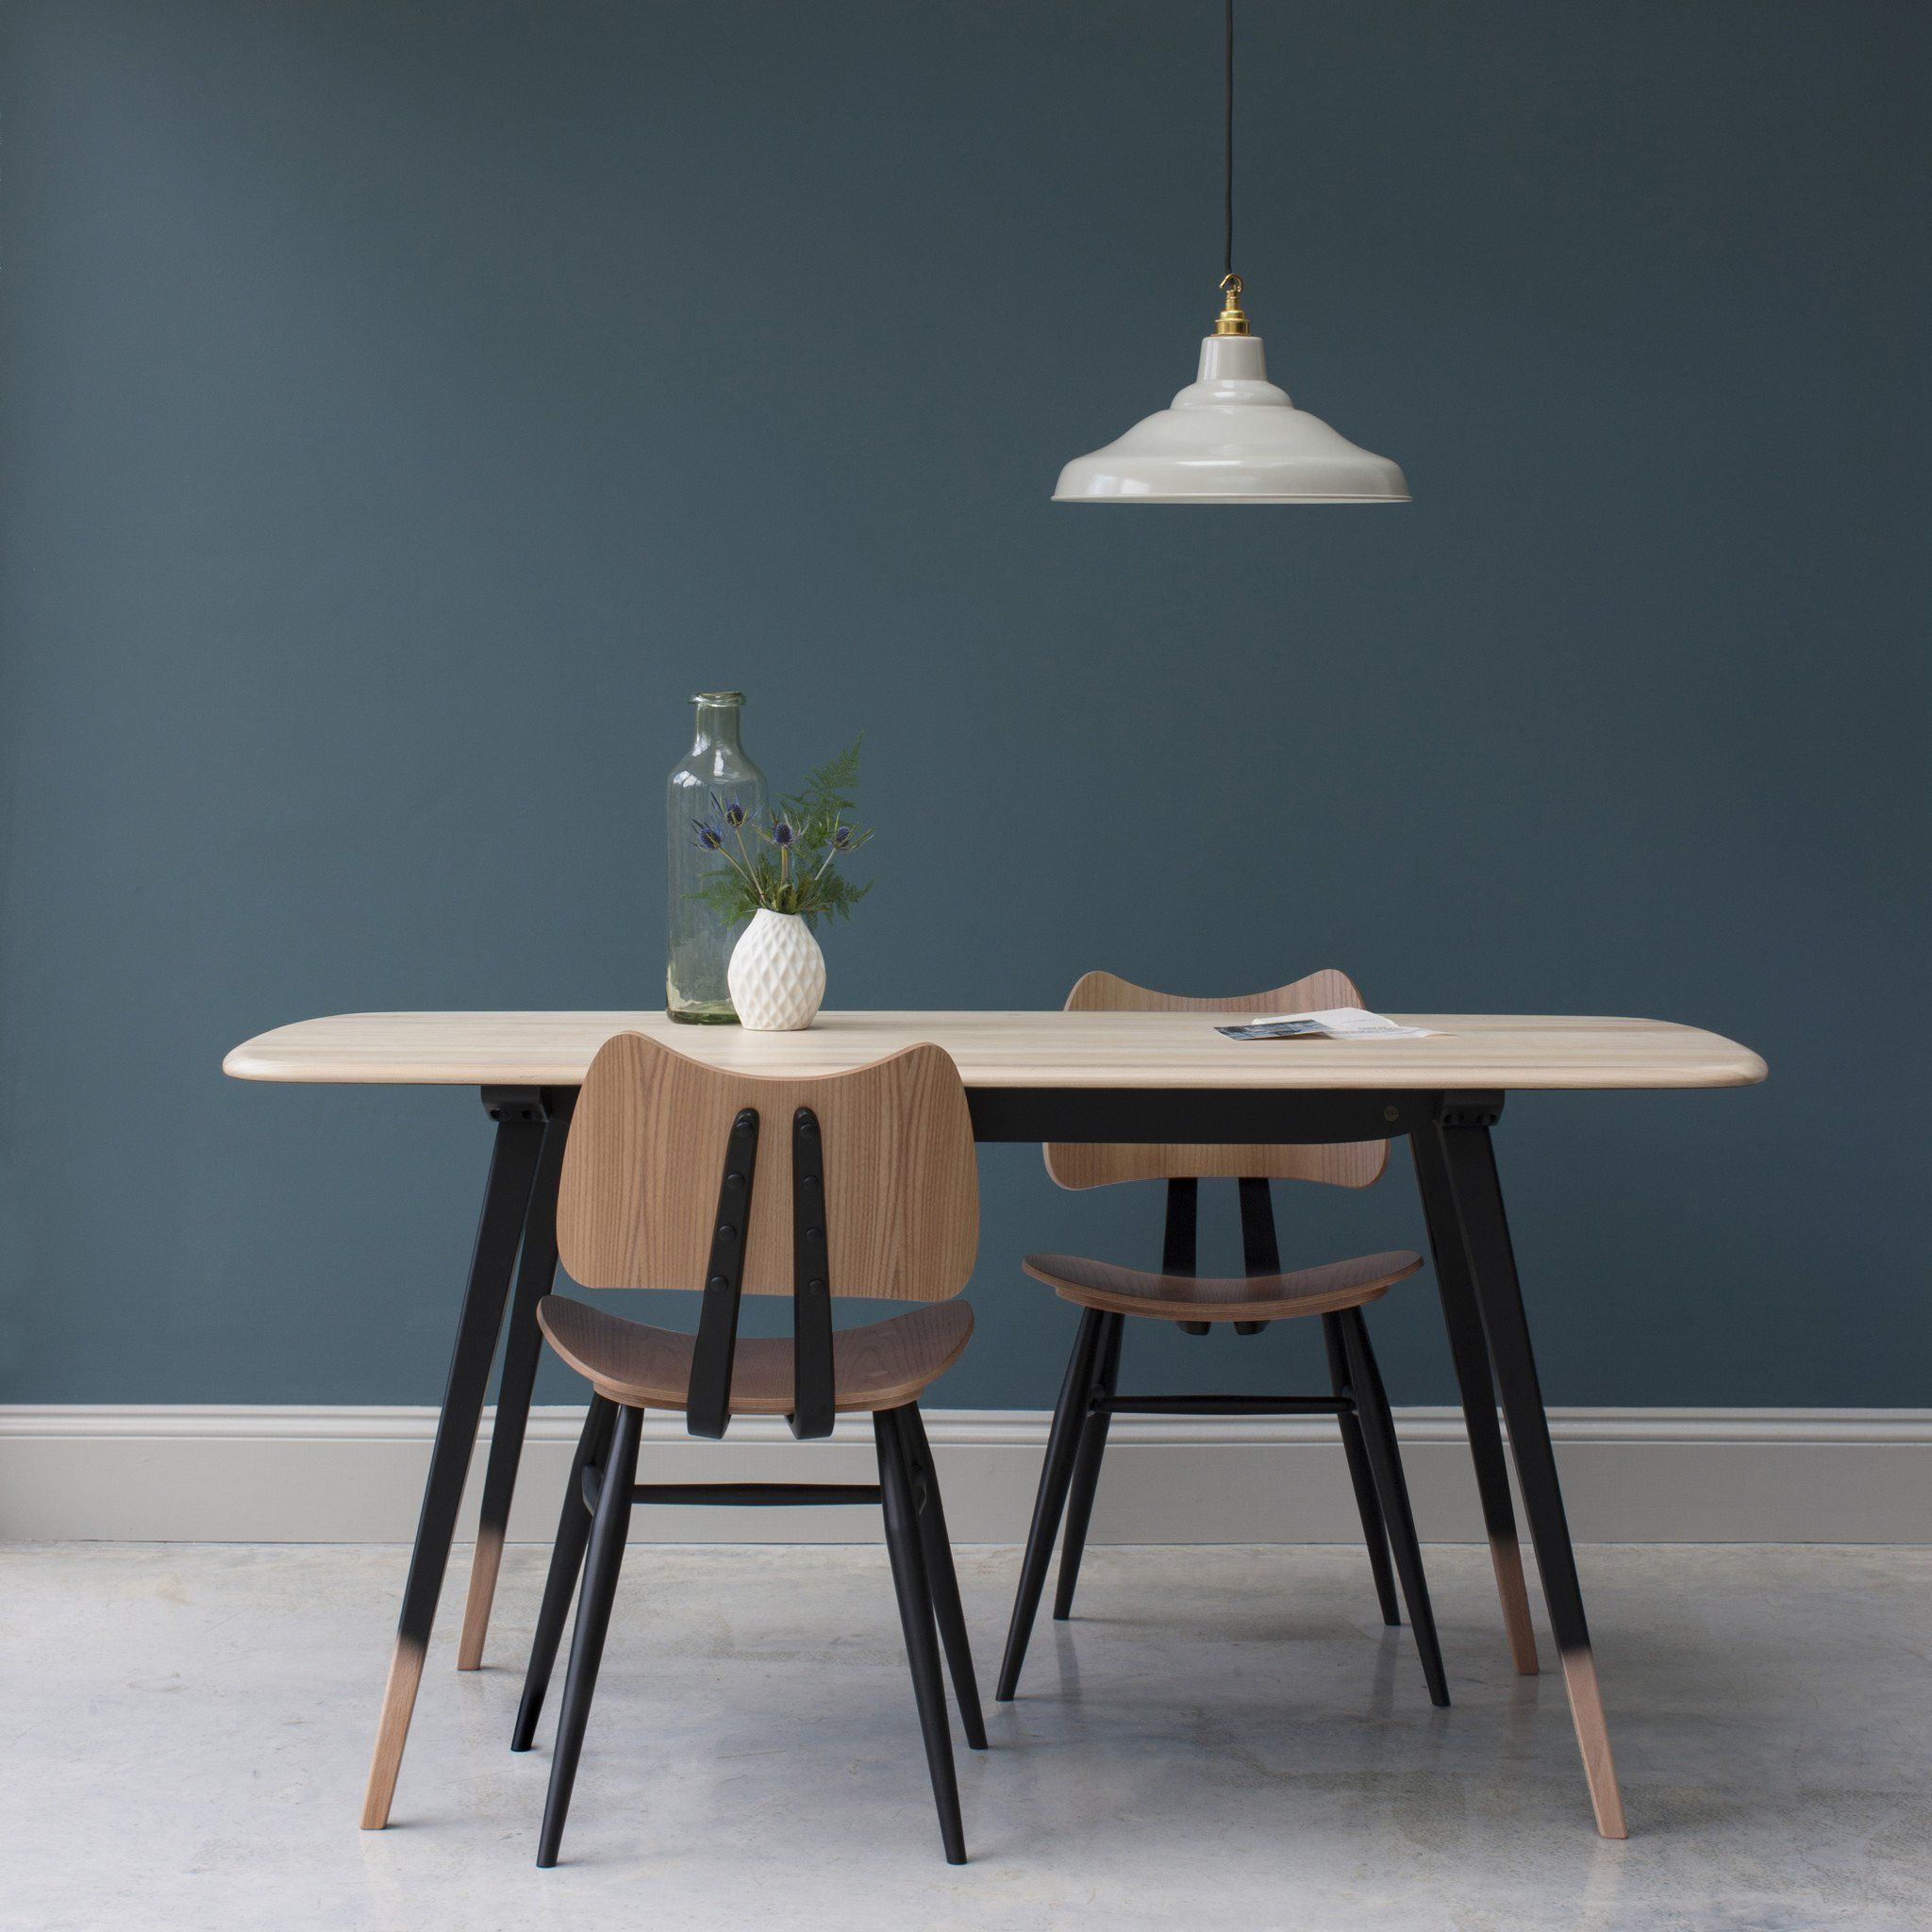 Originals Plank Table In 2020 Plank Table Dining Table Ercol Table